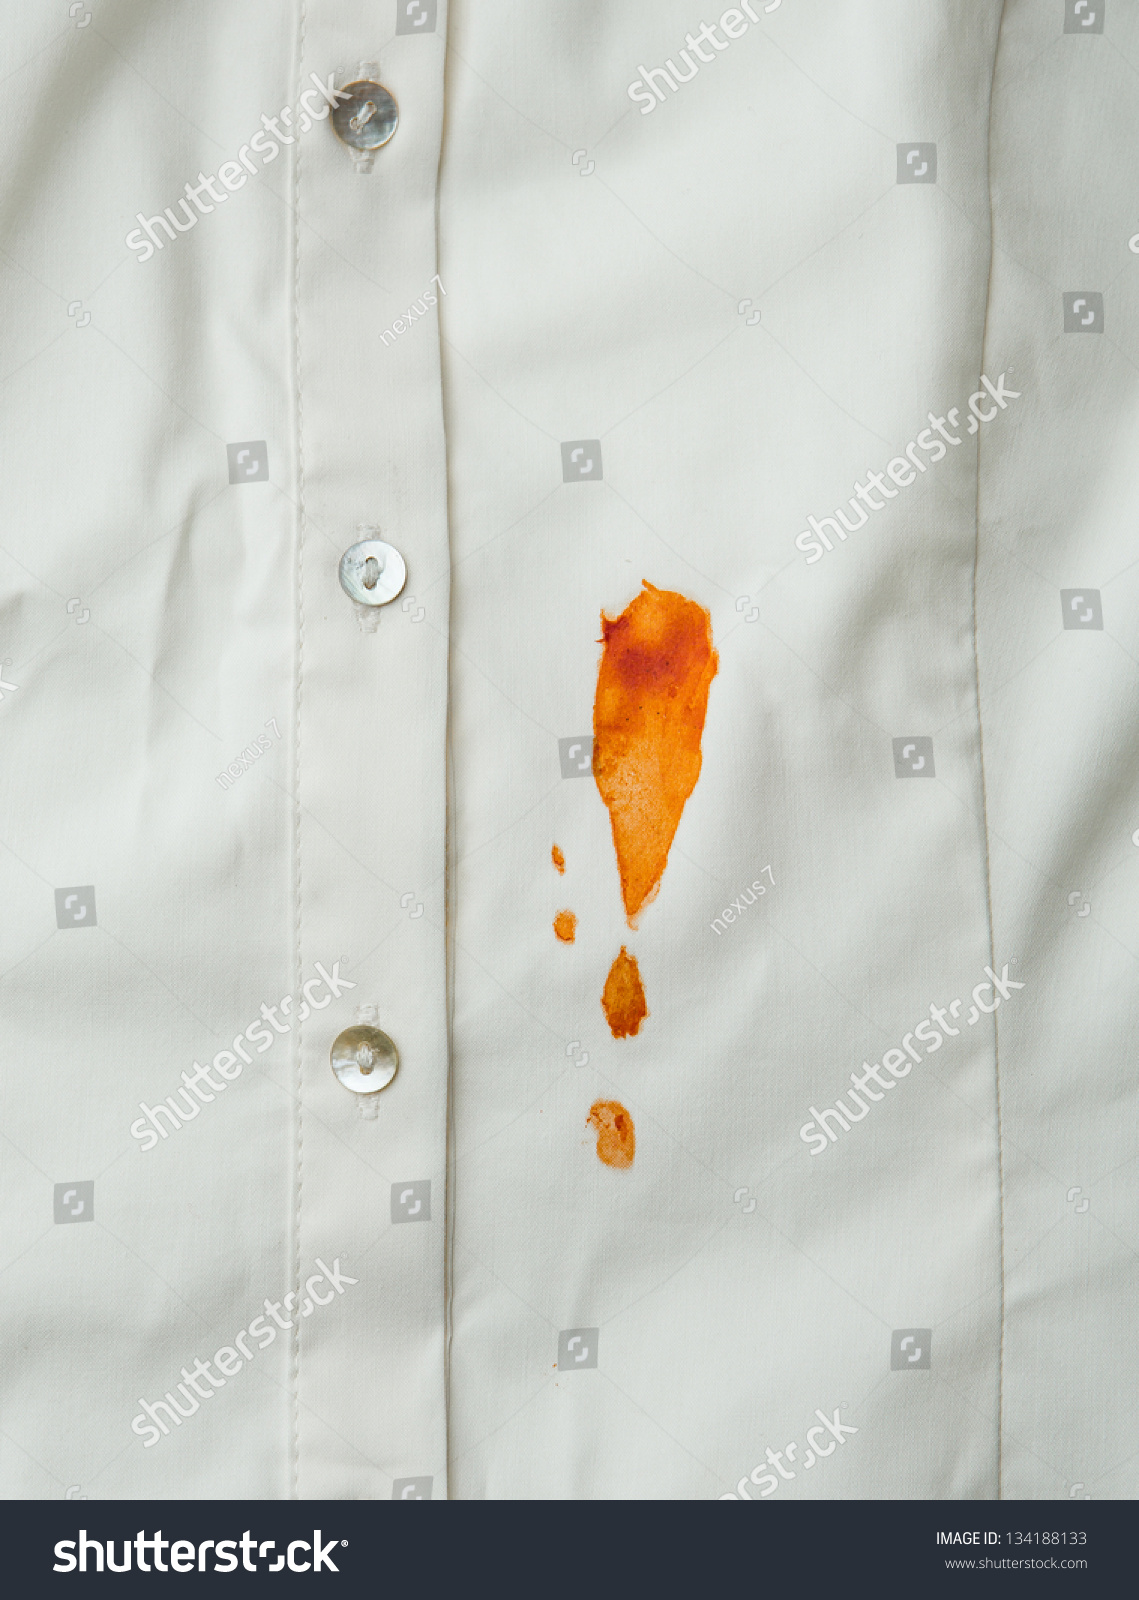 tomato sauce stain on shirt stock photo 134188133